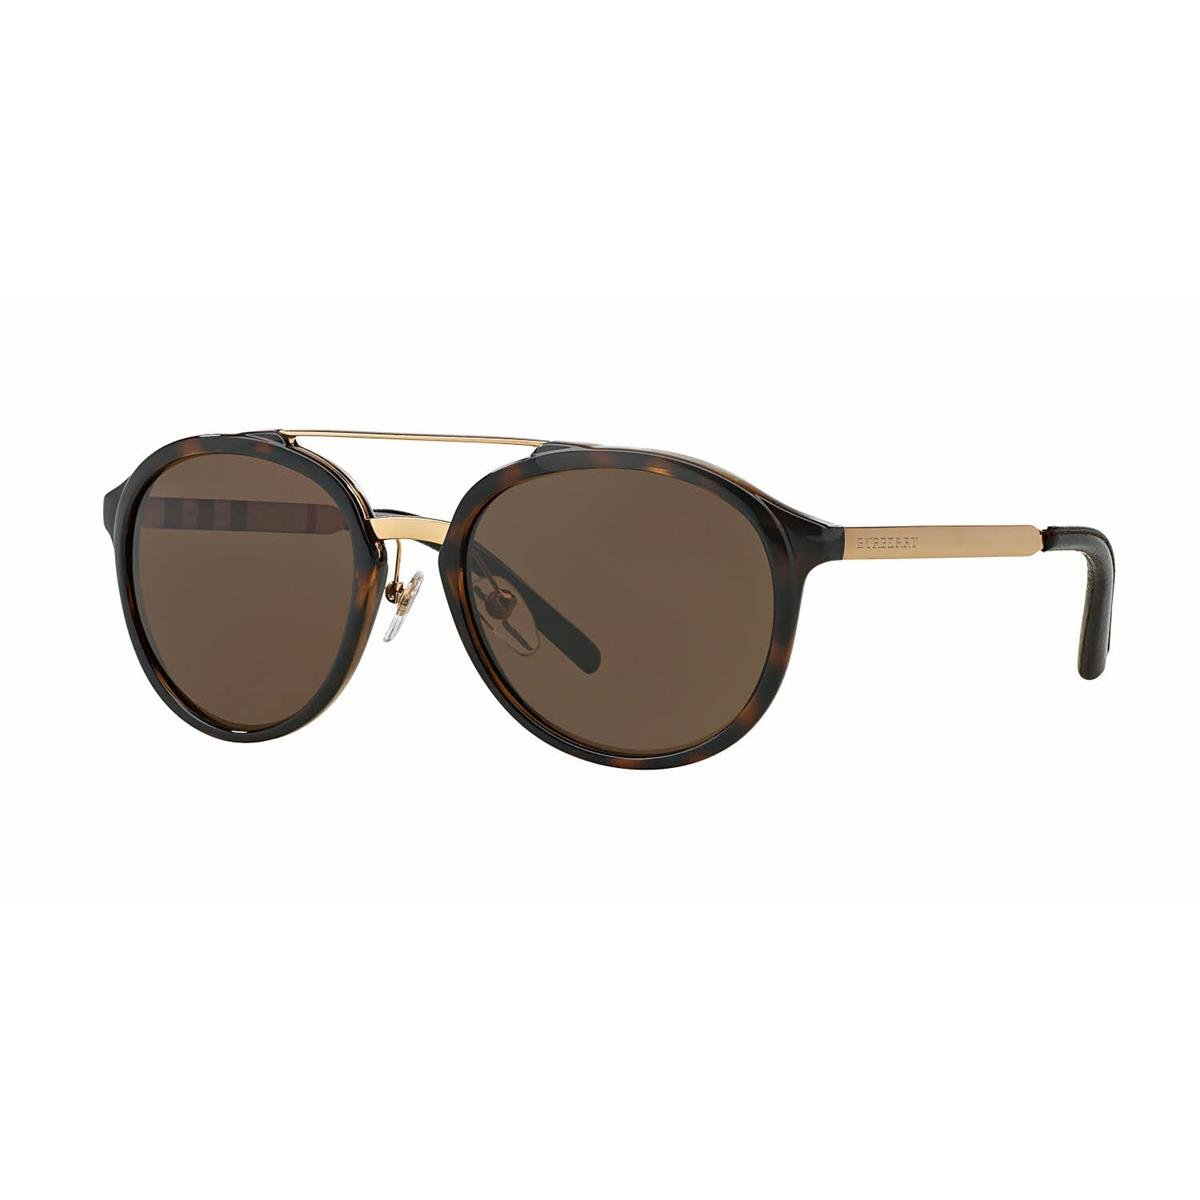 Burberry Glasses Frame Repair : Galleon - Burberry BE4168Q Sunglasses 300273-54 - Tortoise ...